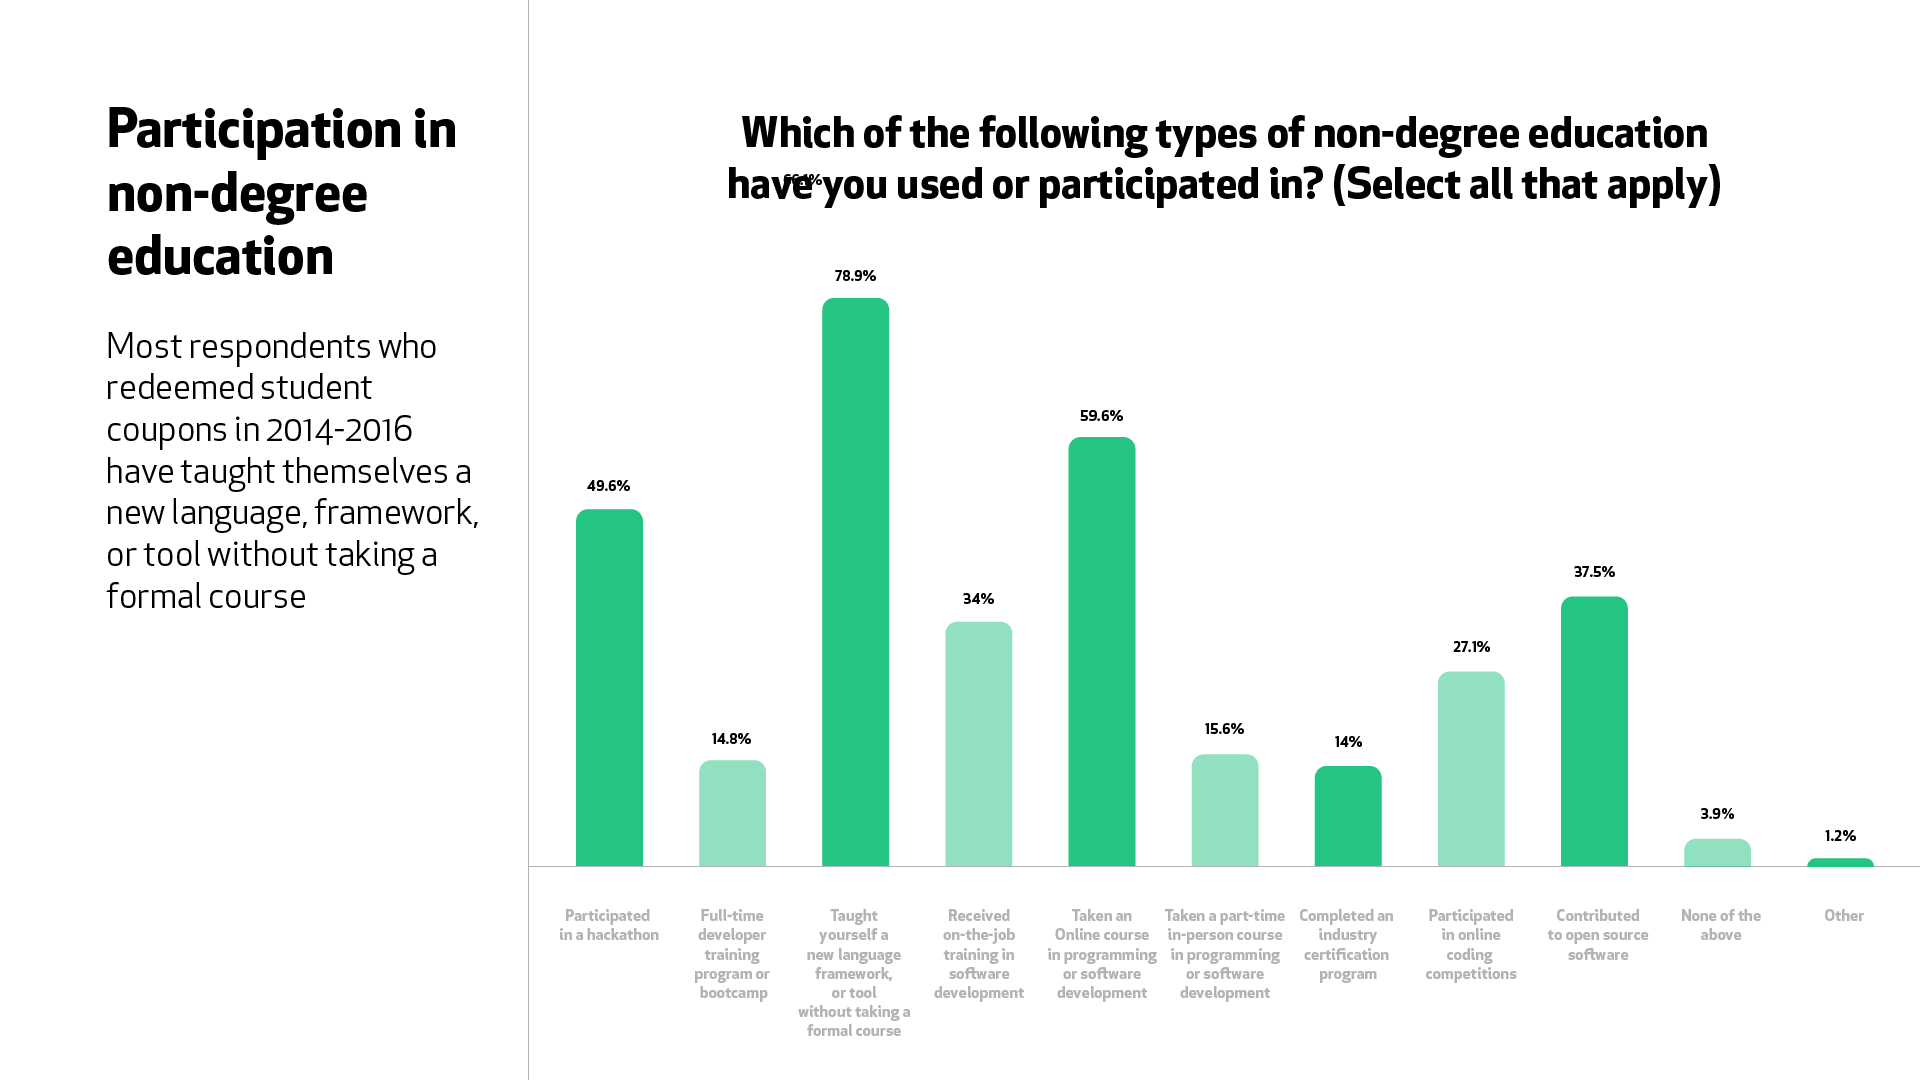 """A graph for the question """"Which of the following non-degree education have you used or participated in?"""" 78.9% of respondents taught themselves a new language, framework, or tool without a formal course, 59.6% took an online course, 49.6% participated in a hackathon, and 37.5% contributed to open source."""